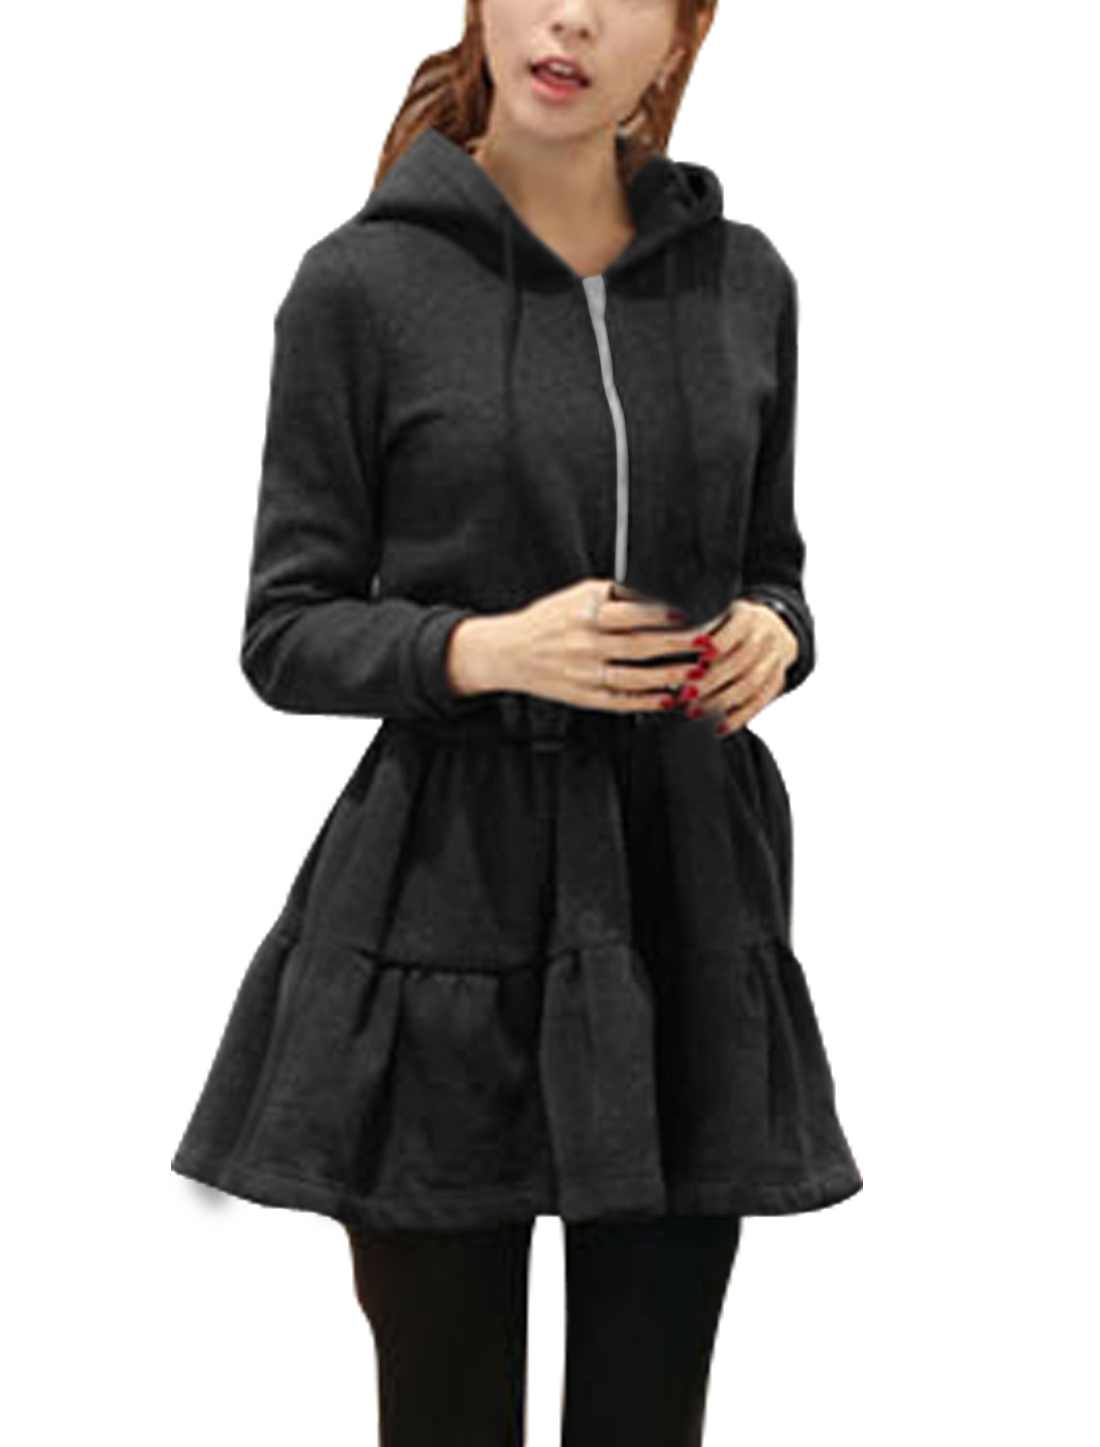 Women Hooded Flouncing Hem Soft Lining Tunic Coat Dress Black S